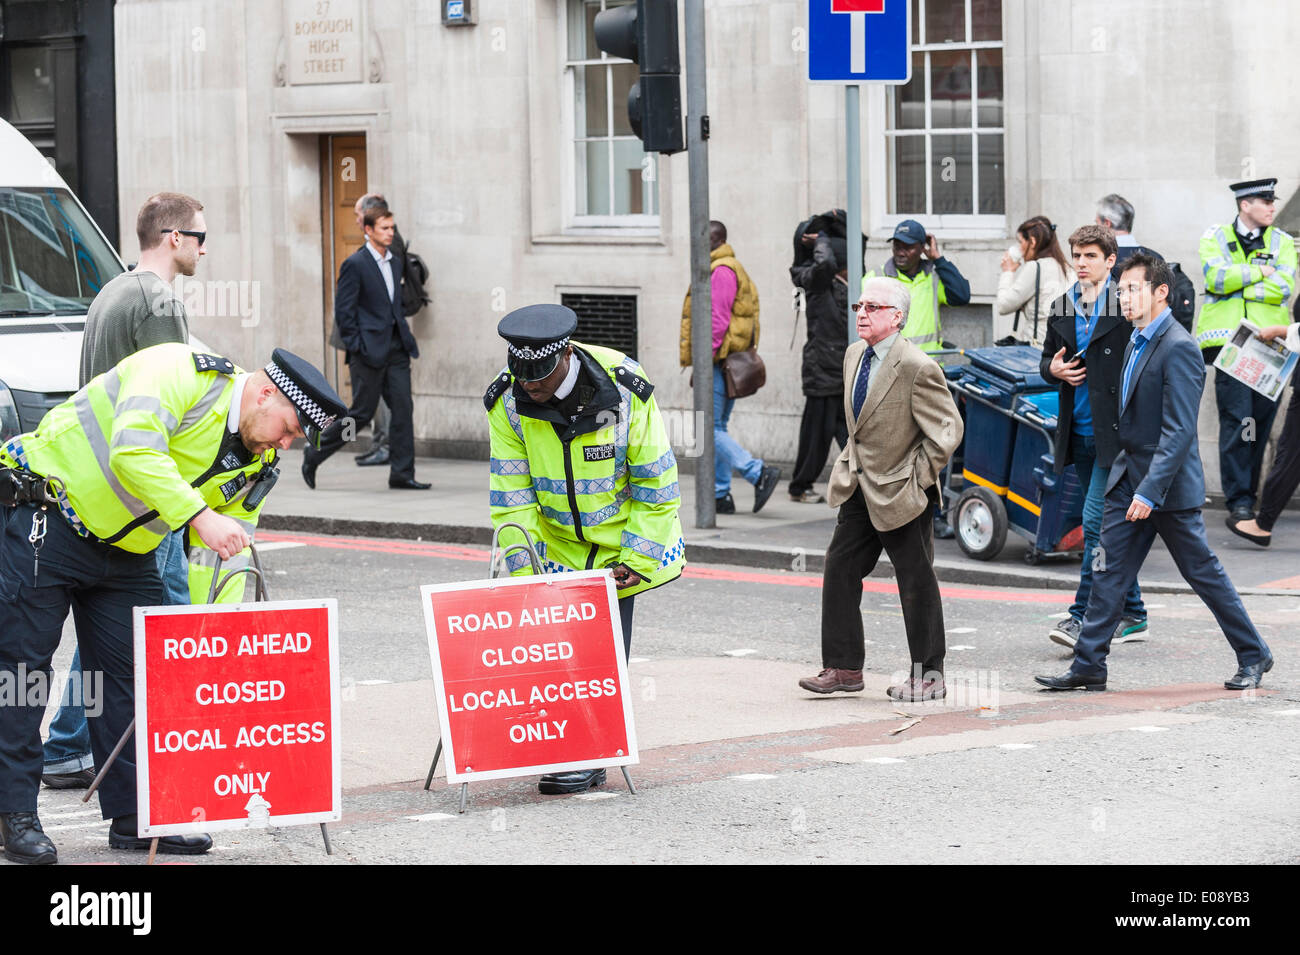 London, UK. 6th May 2014, Metropolitan Police Officers prepare for the demonstration by London Black Cab drivers as they protest over the refusal to place a Black Cab taxi rank outside the entrance to The Shard. Photographer:  Gordon Scammell/Alamy Live News - Stock Image